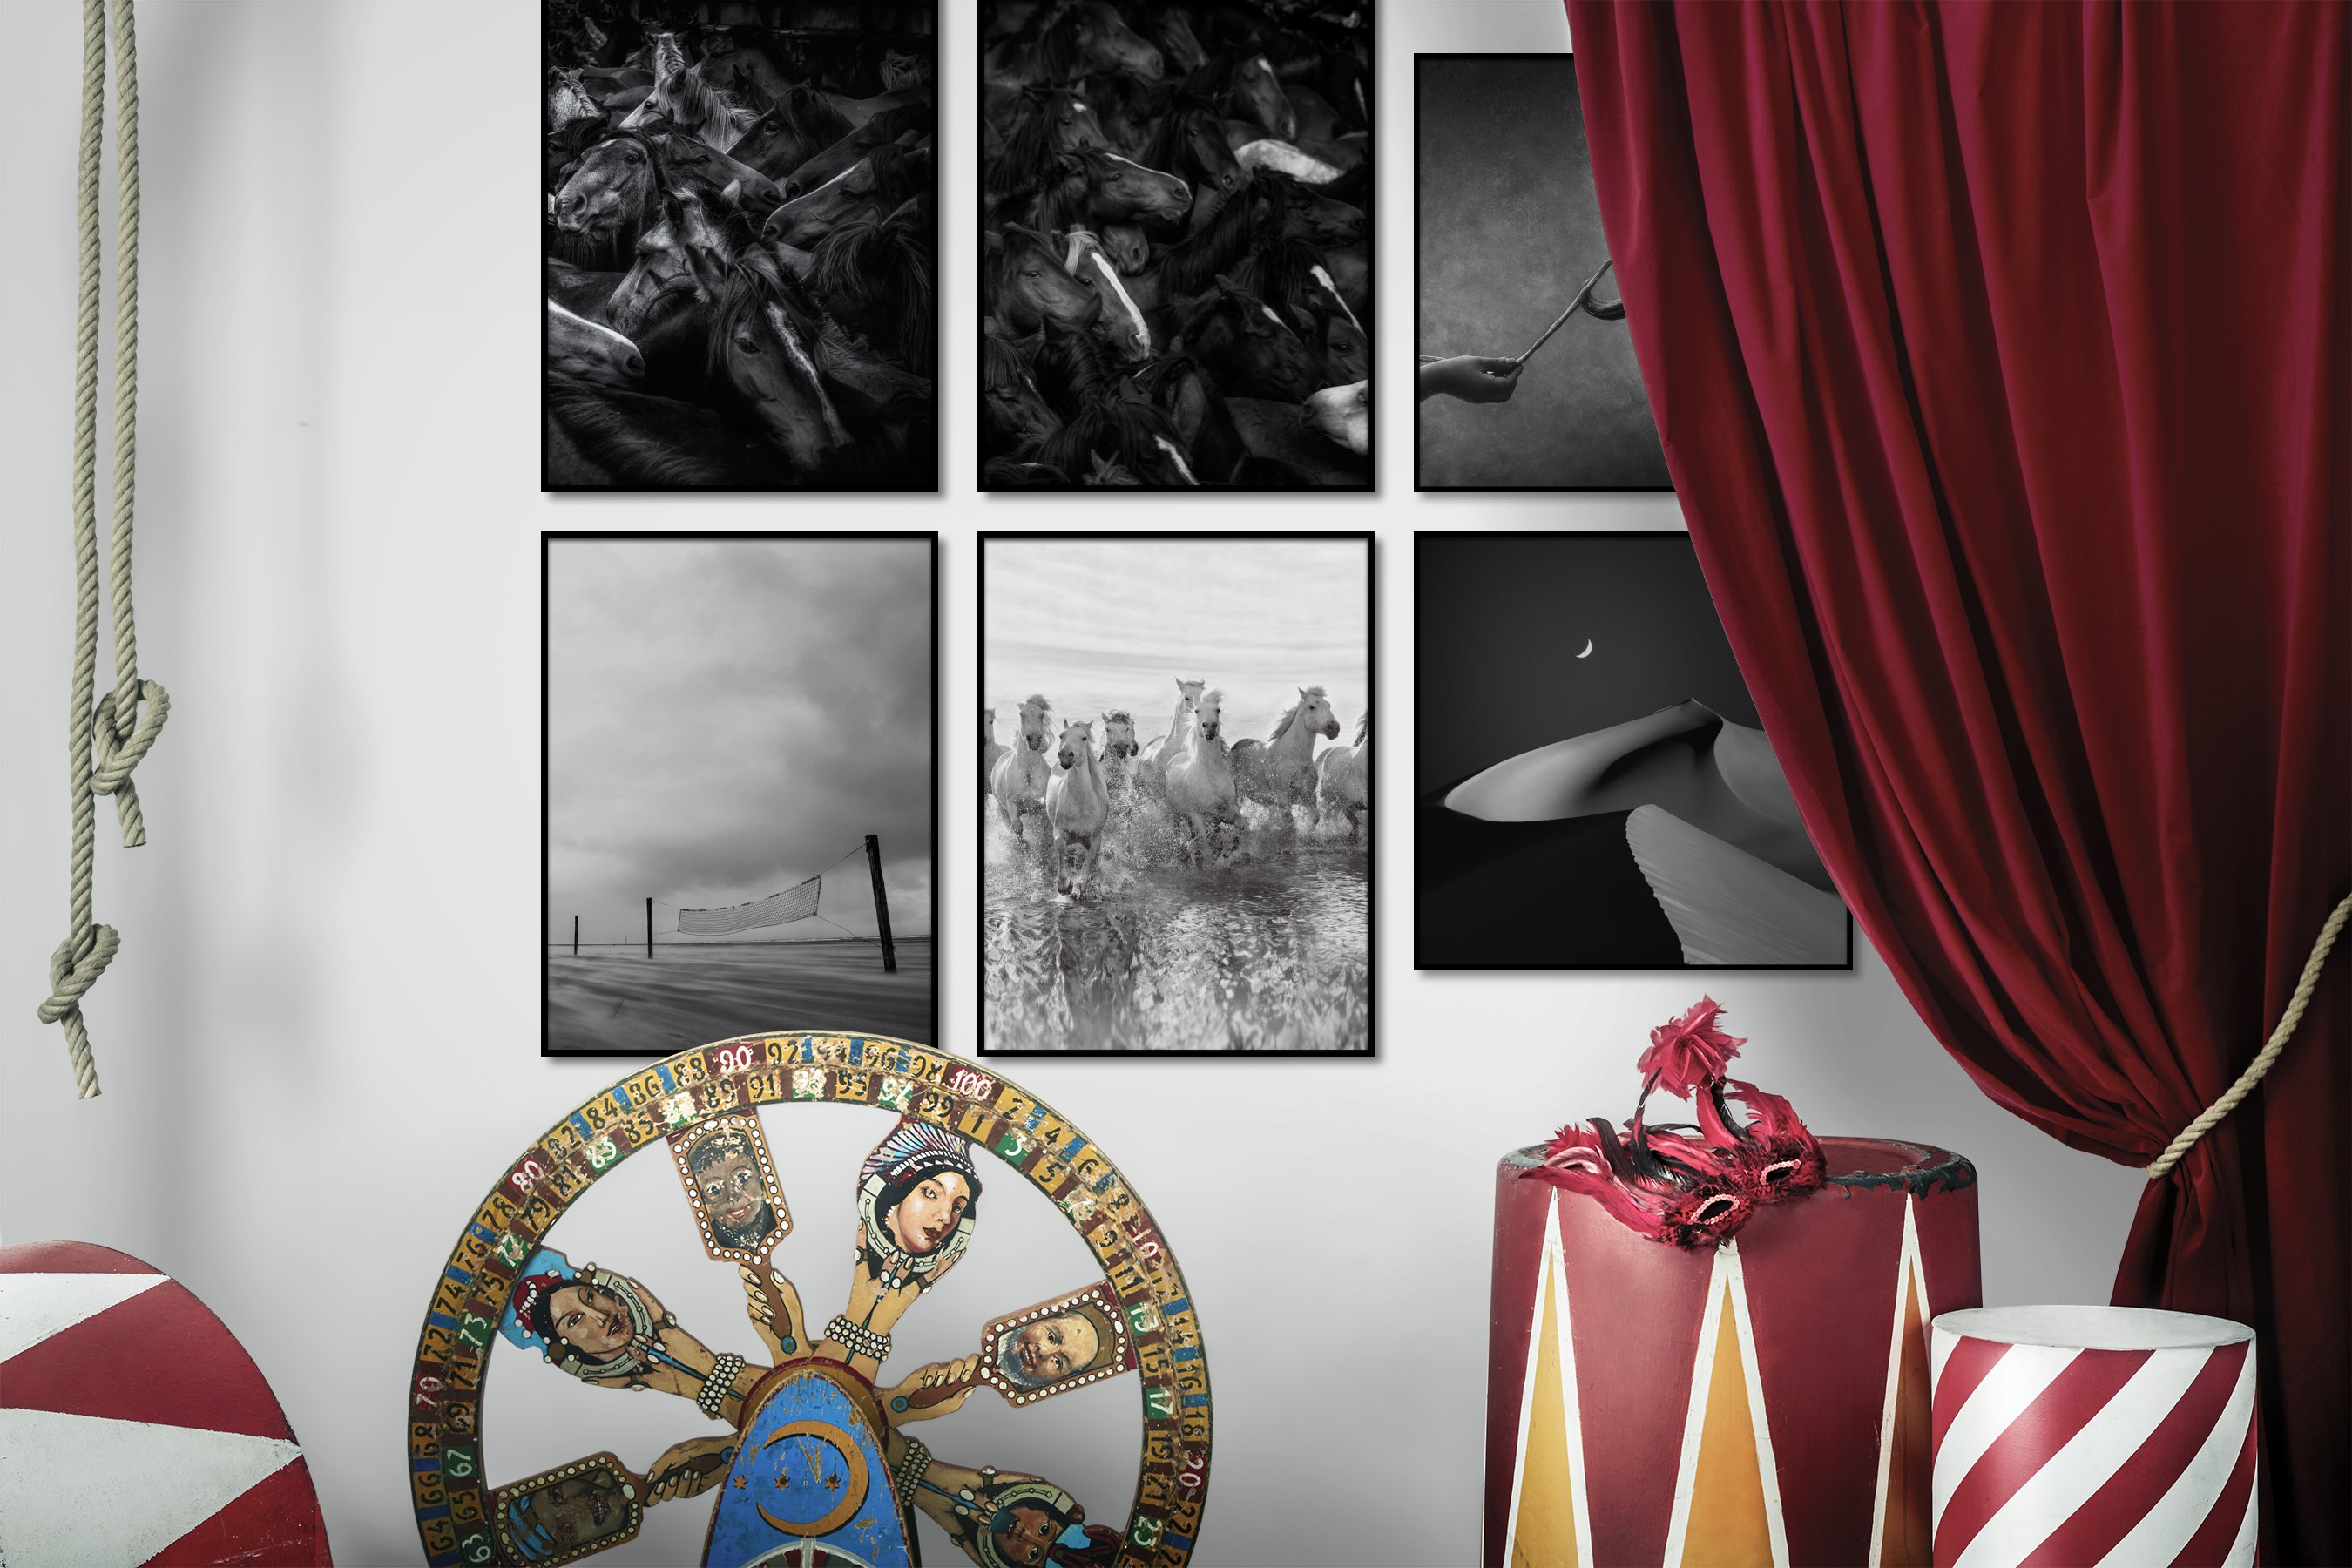 Gallery wall idea with six framed pictures arranged on a wall depicting Black & White, For the Maximalist, Animals, Country Life, For the Minimalist, Beach & Water, and For the Moderate